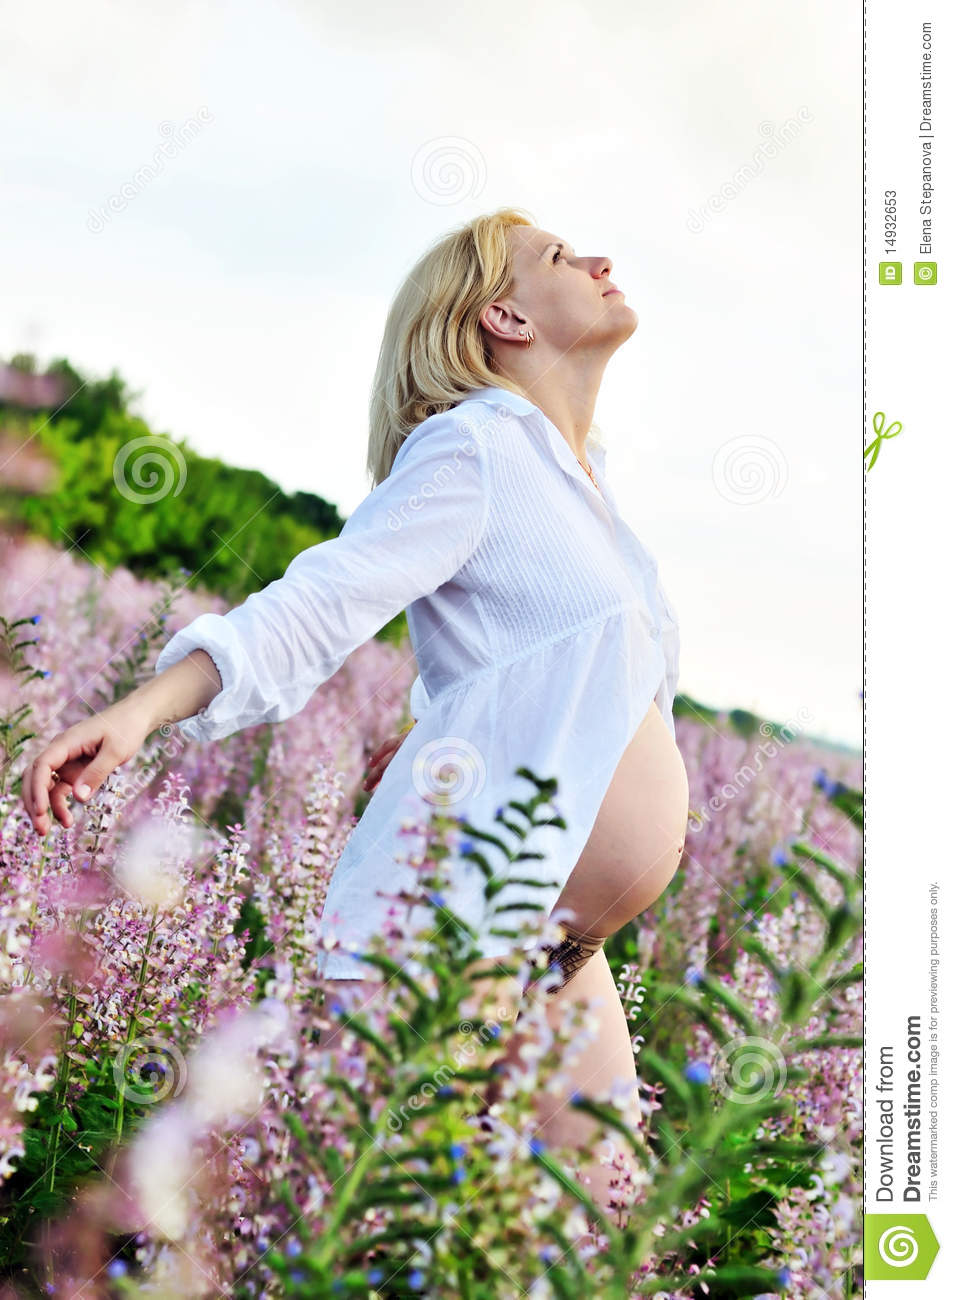 Pregnant woman at one with nature stock photos image for Fish dream meaning pregnancy